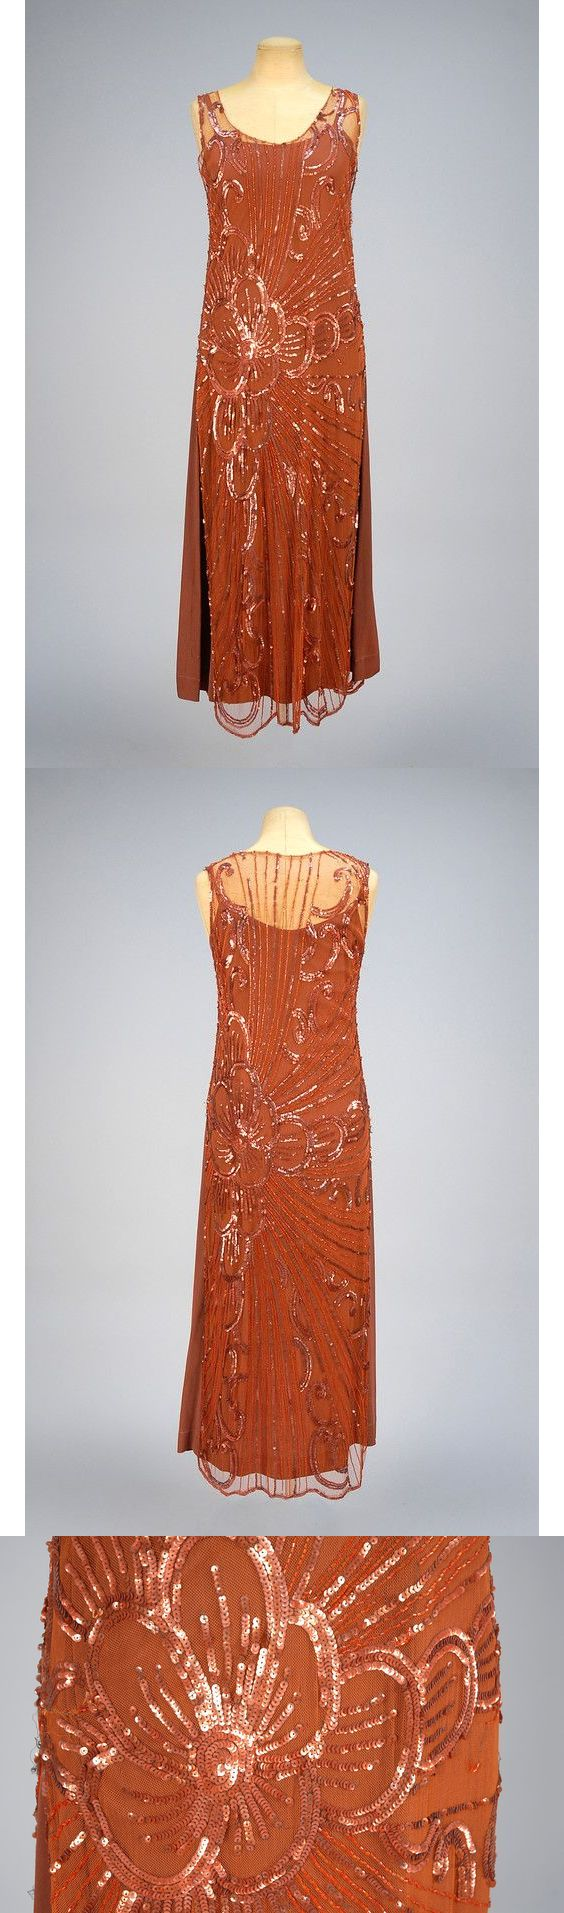 SEQUINED NET TABARD, 1920s. Bronze tulle decorated with an off-center floral burst in copper sequins and burnt orange beads. Together with a brown silk under-dress. B-36, L-51. $510